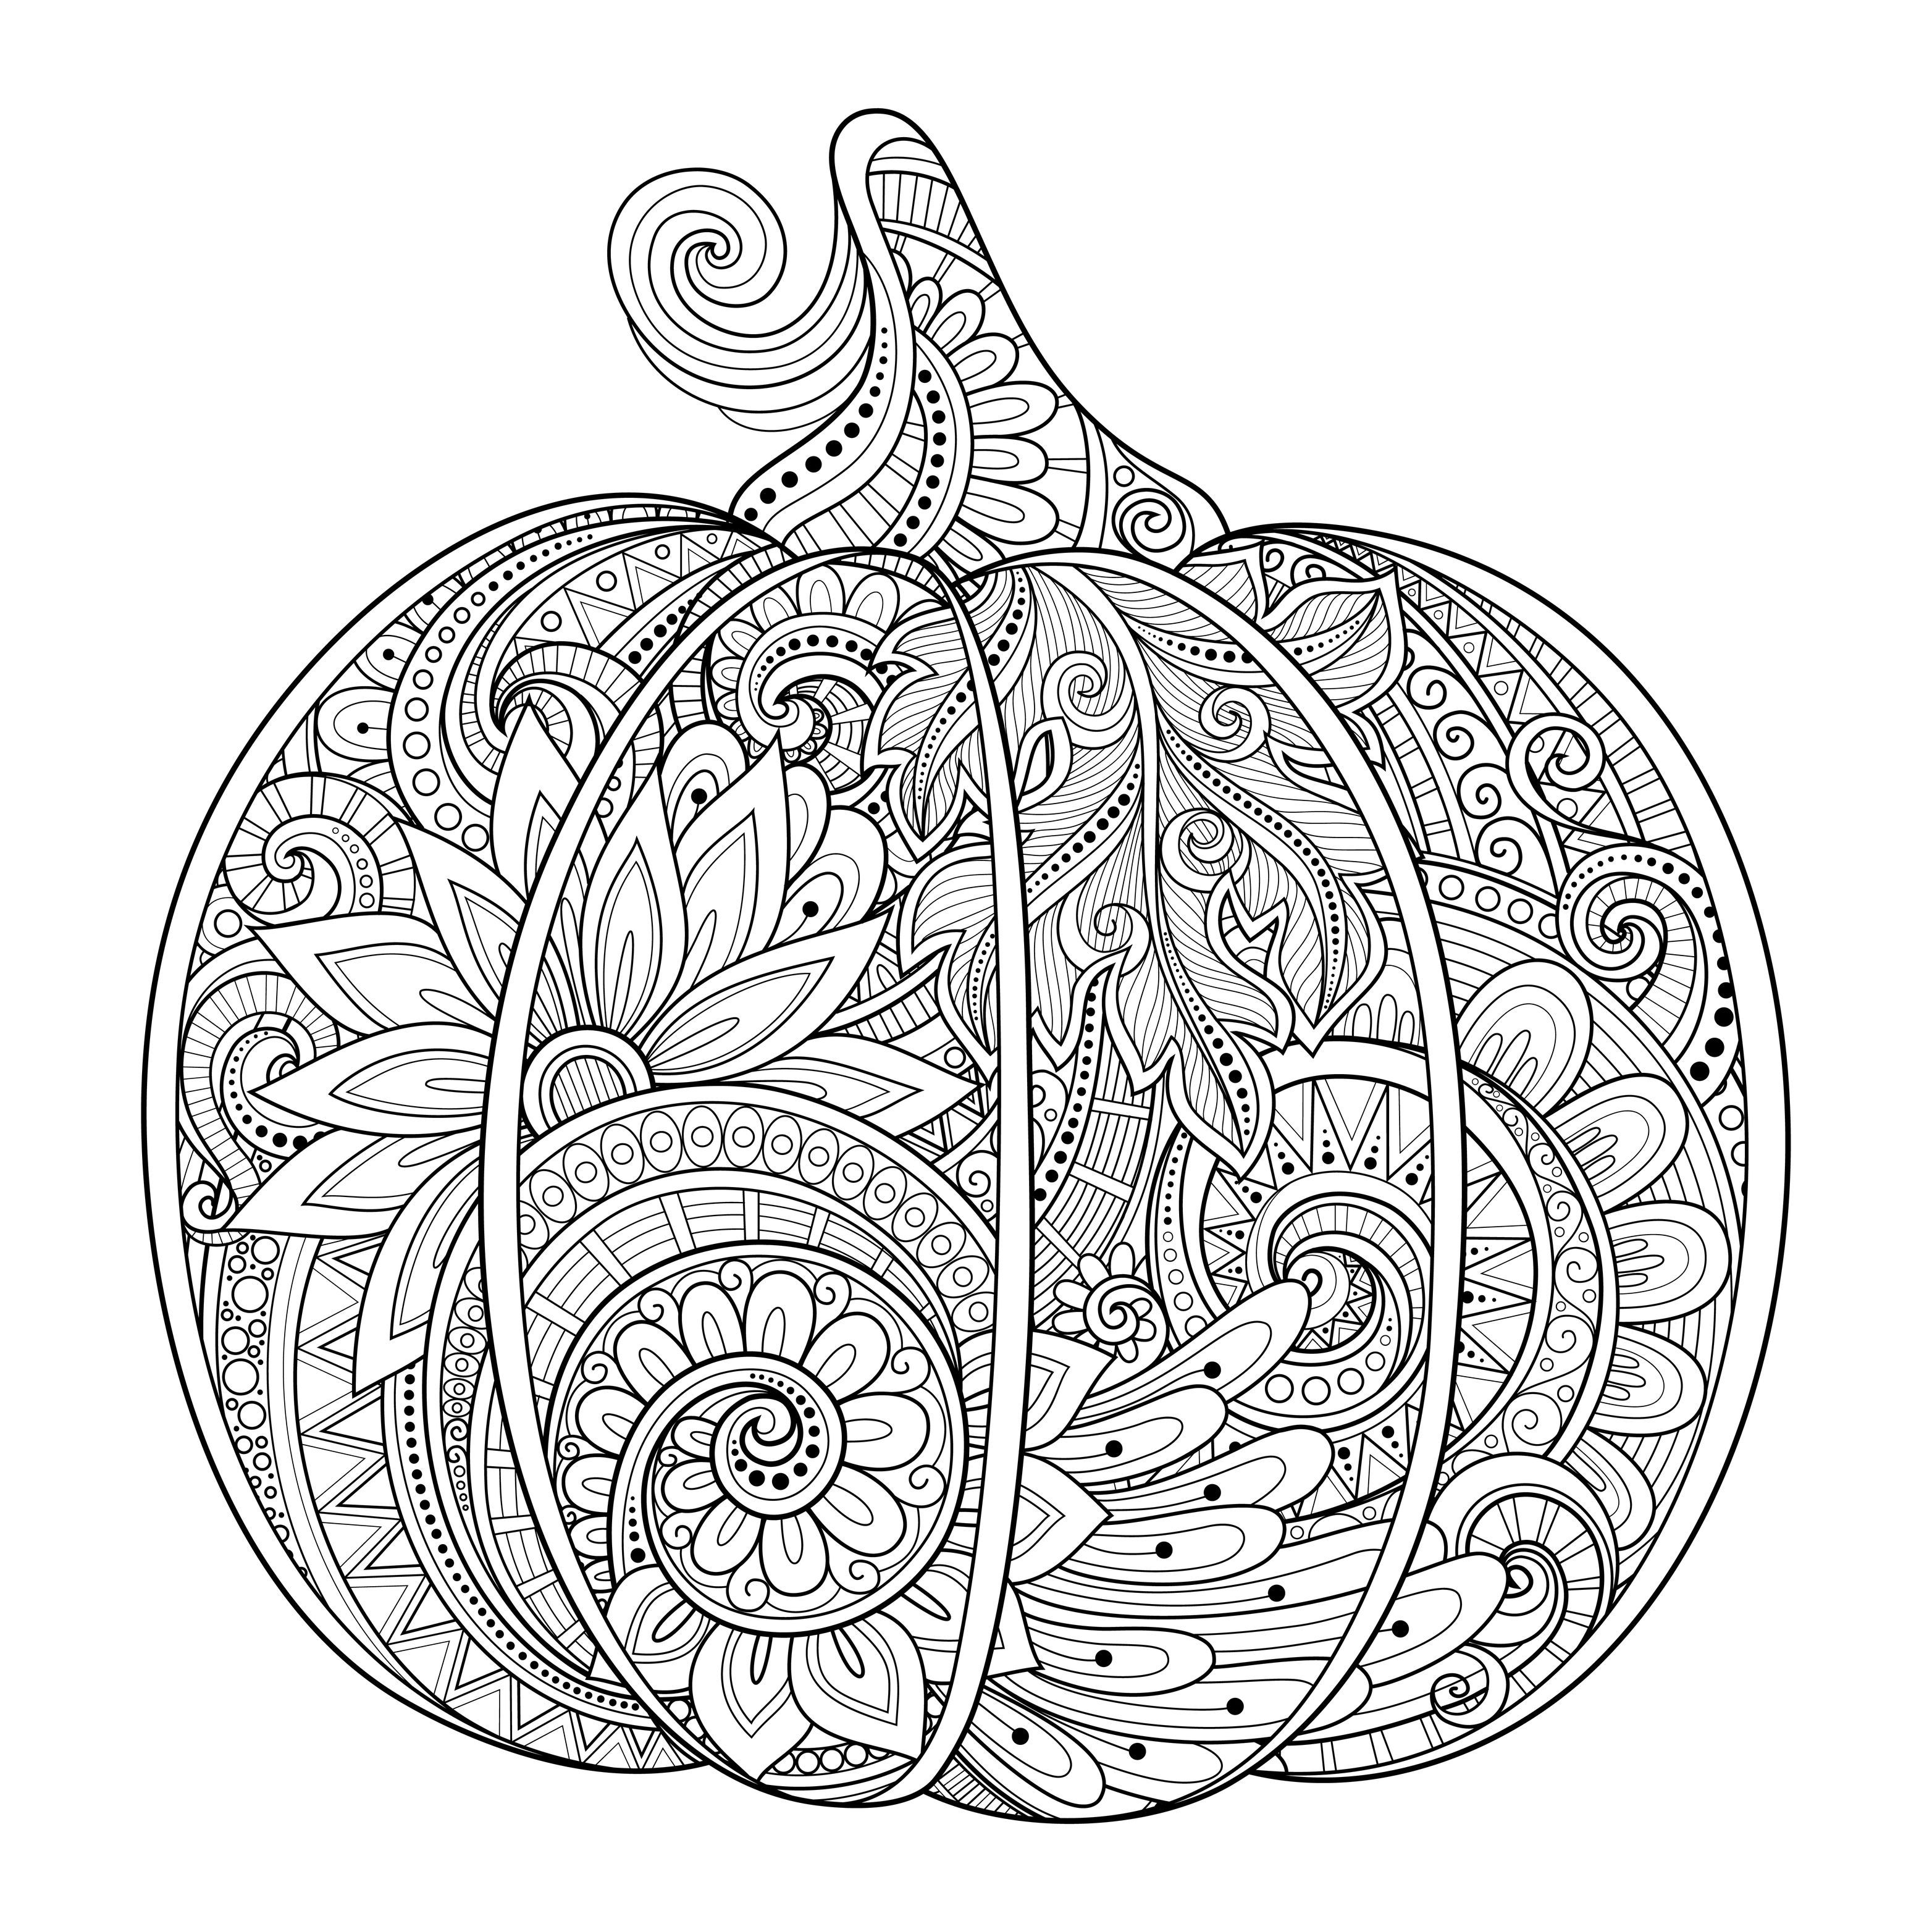 Halloween Coloring Pages Adults Pumpkin Coloring Pages Halloween Coloring Book Thanksgiving Coloring Pages